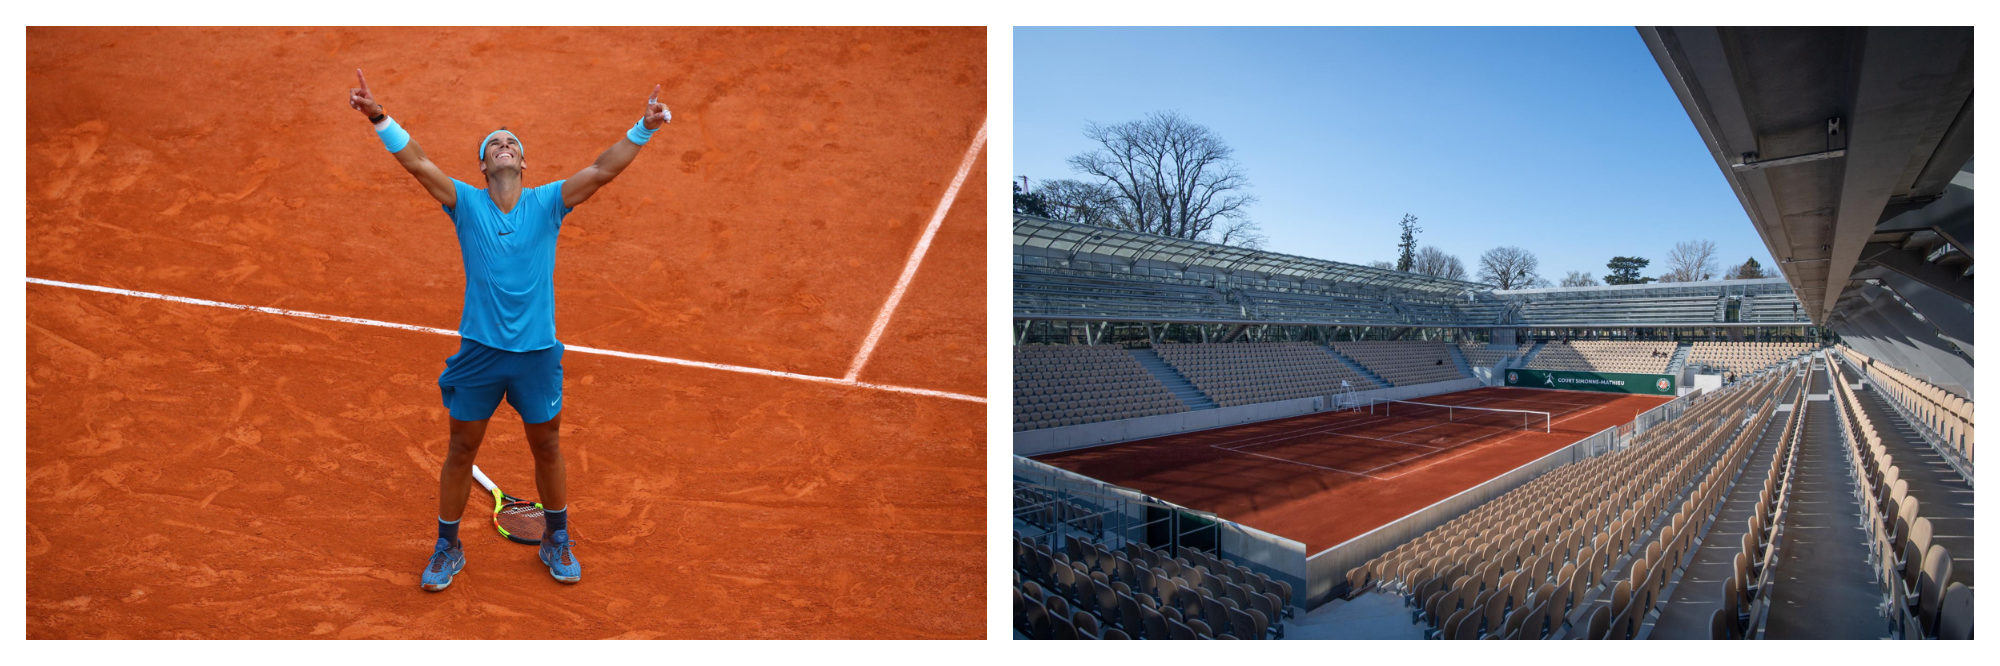 May in Paris is also about Rolland Garros, one the annual sports highlights in the city.